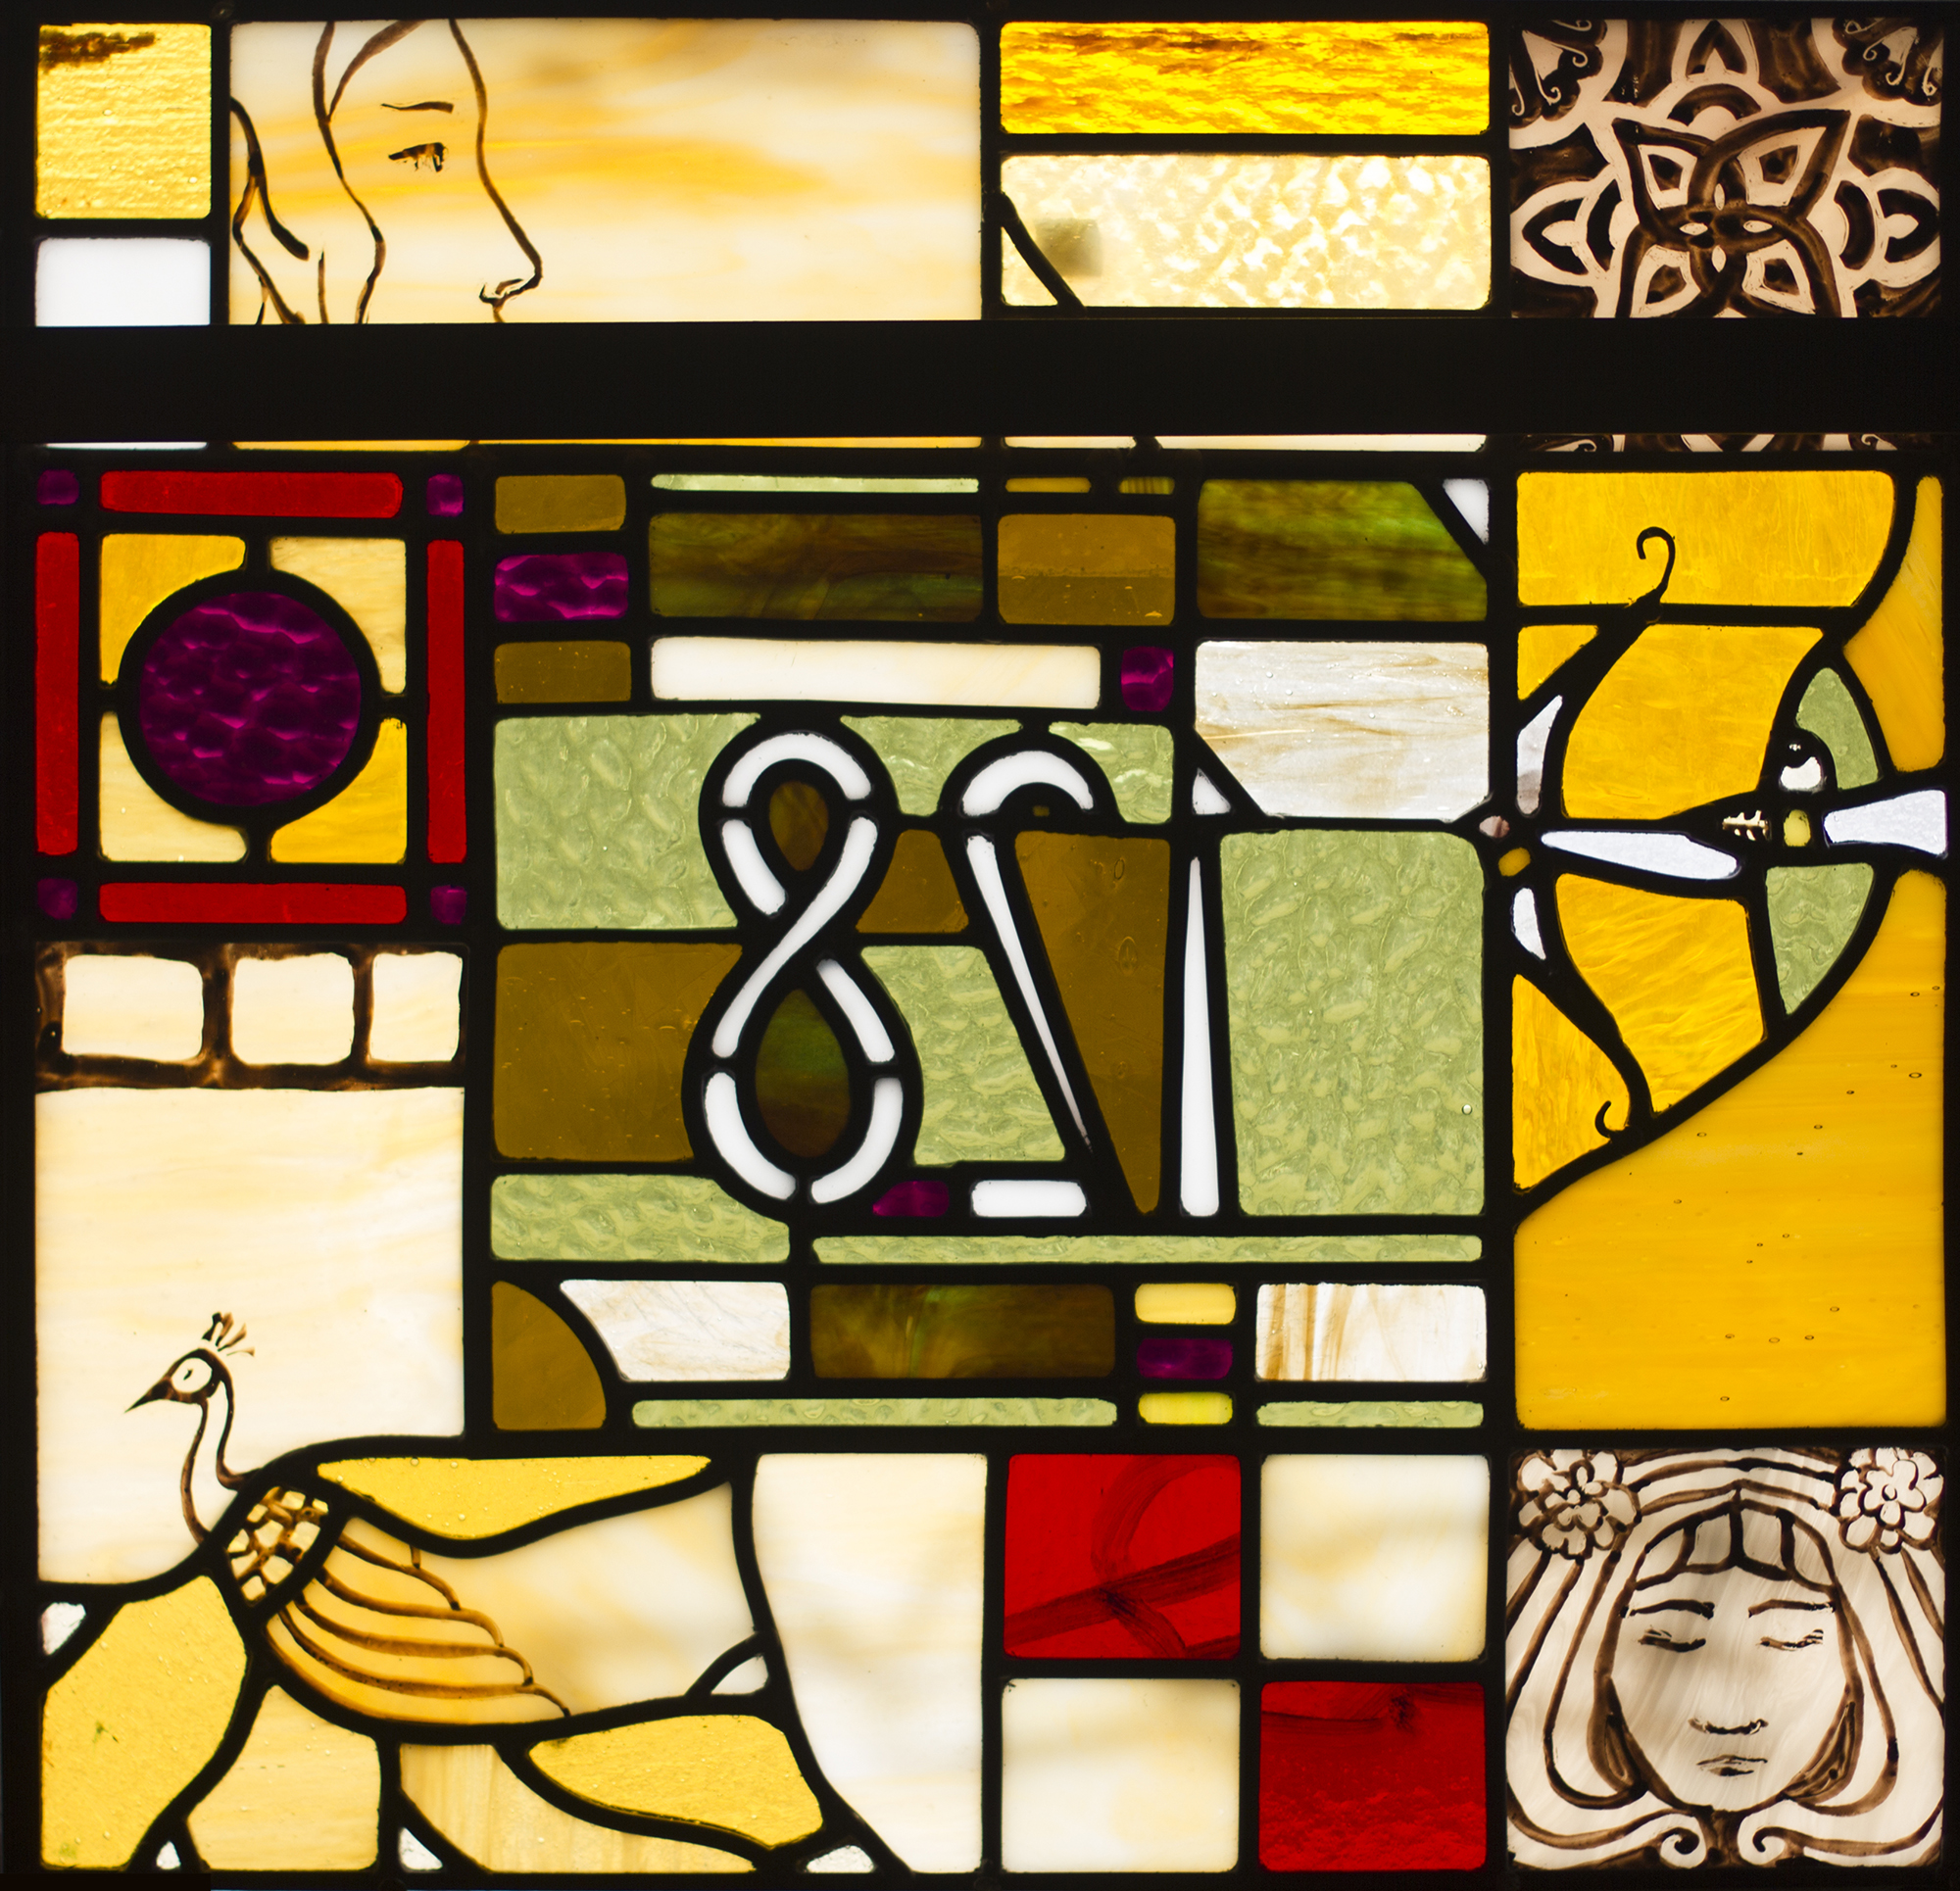 stained_glass_02